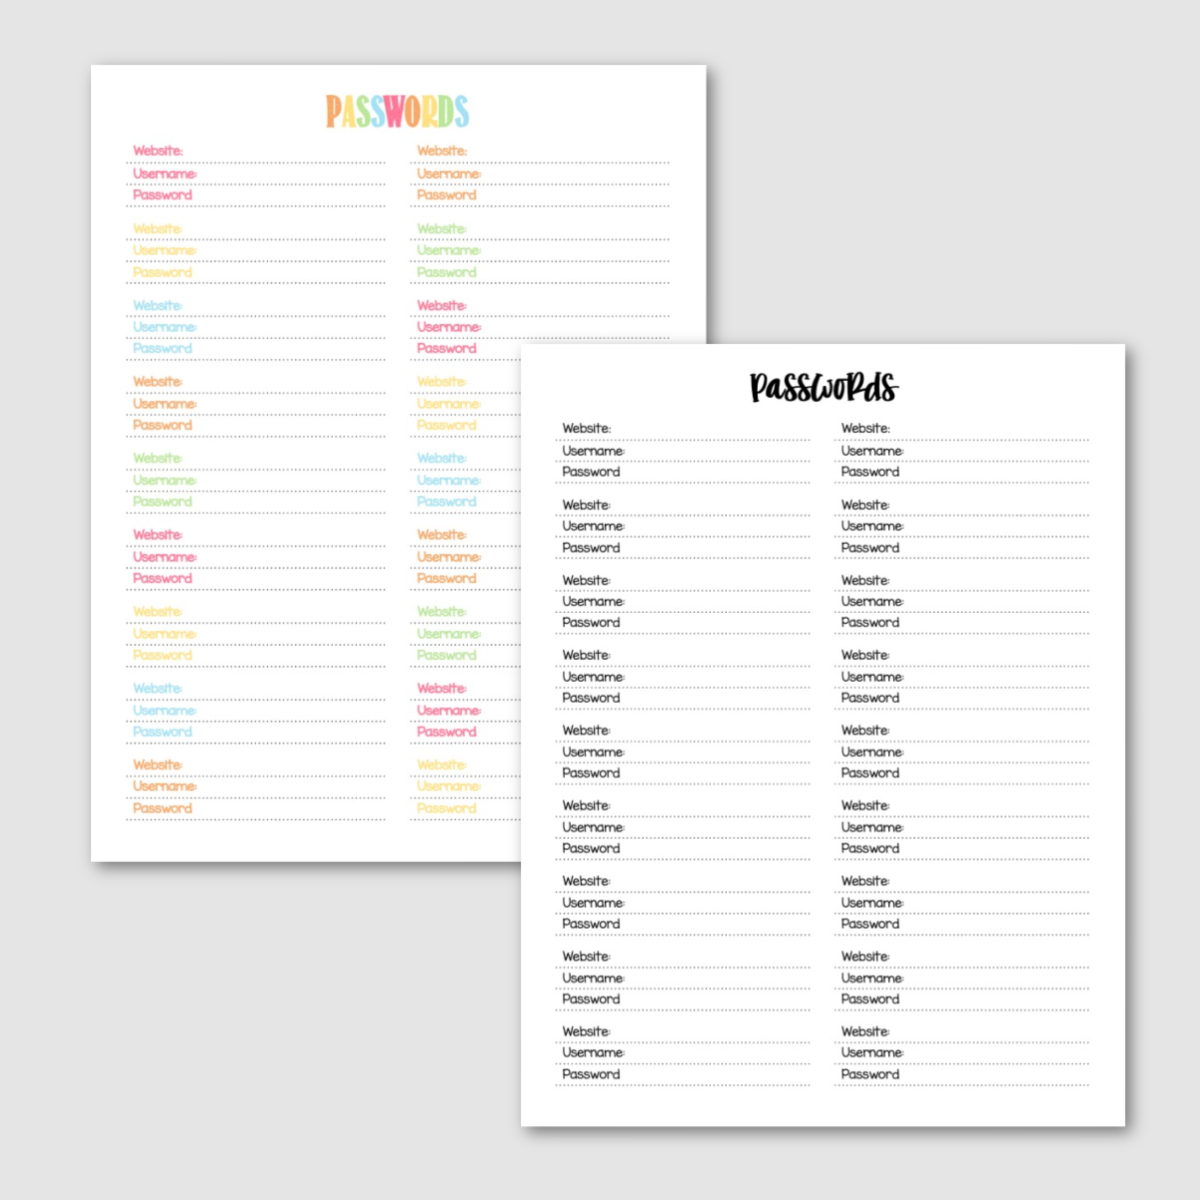 Free Printable Passwords Log